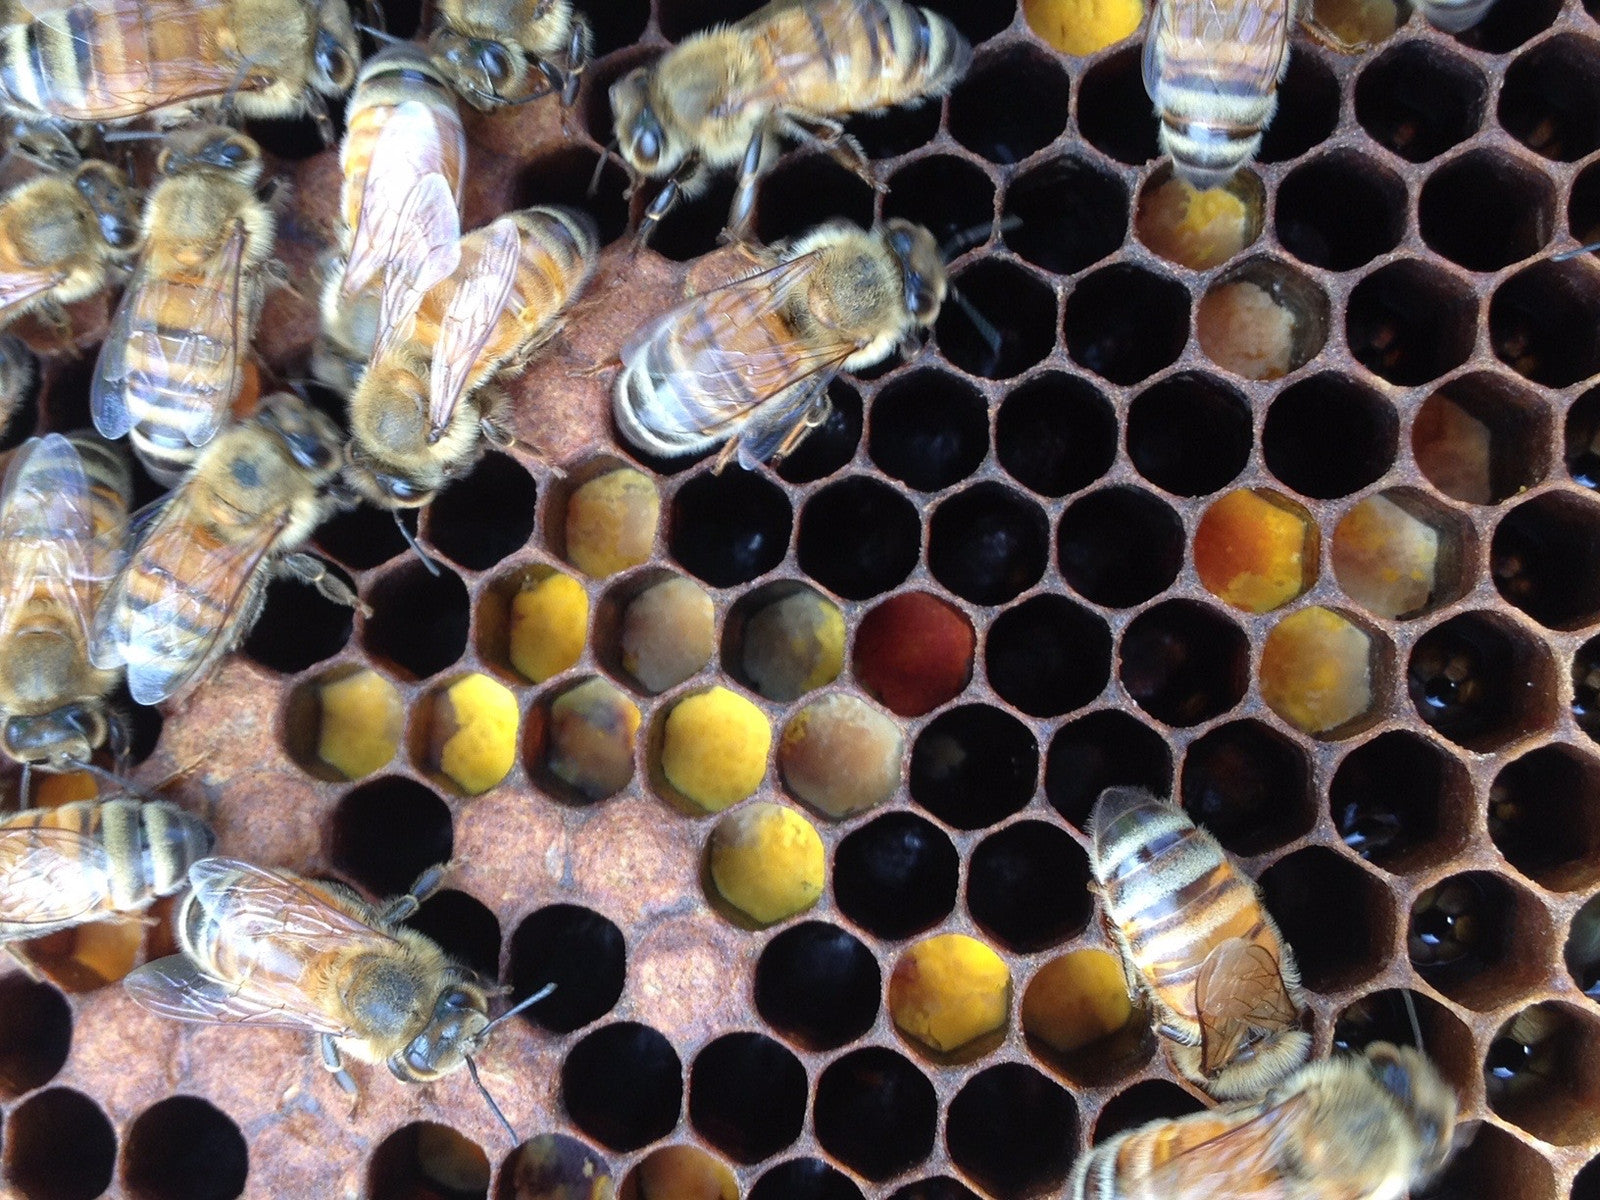 Honeybees in local beehives